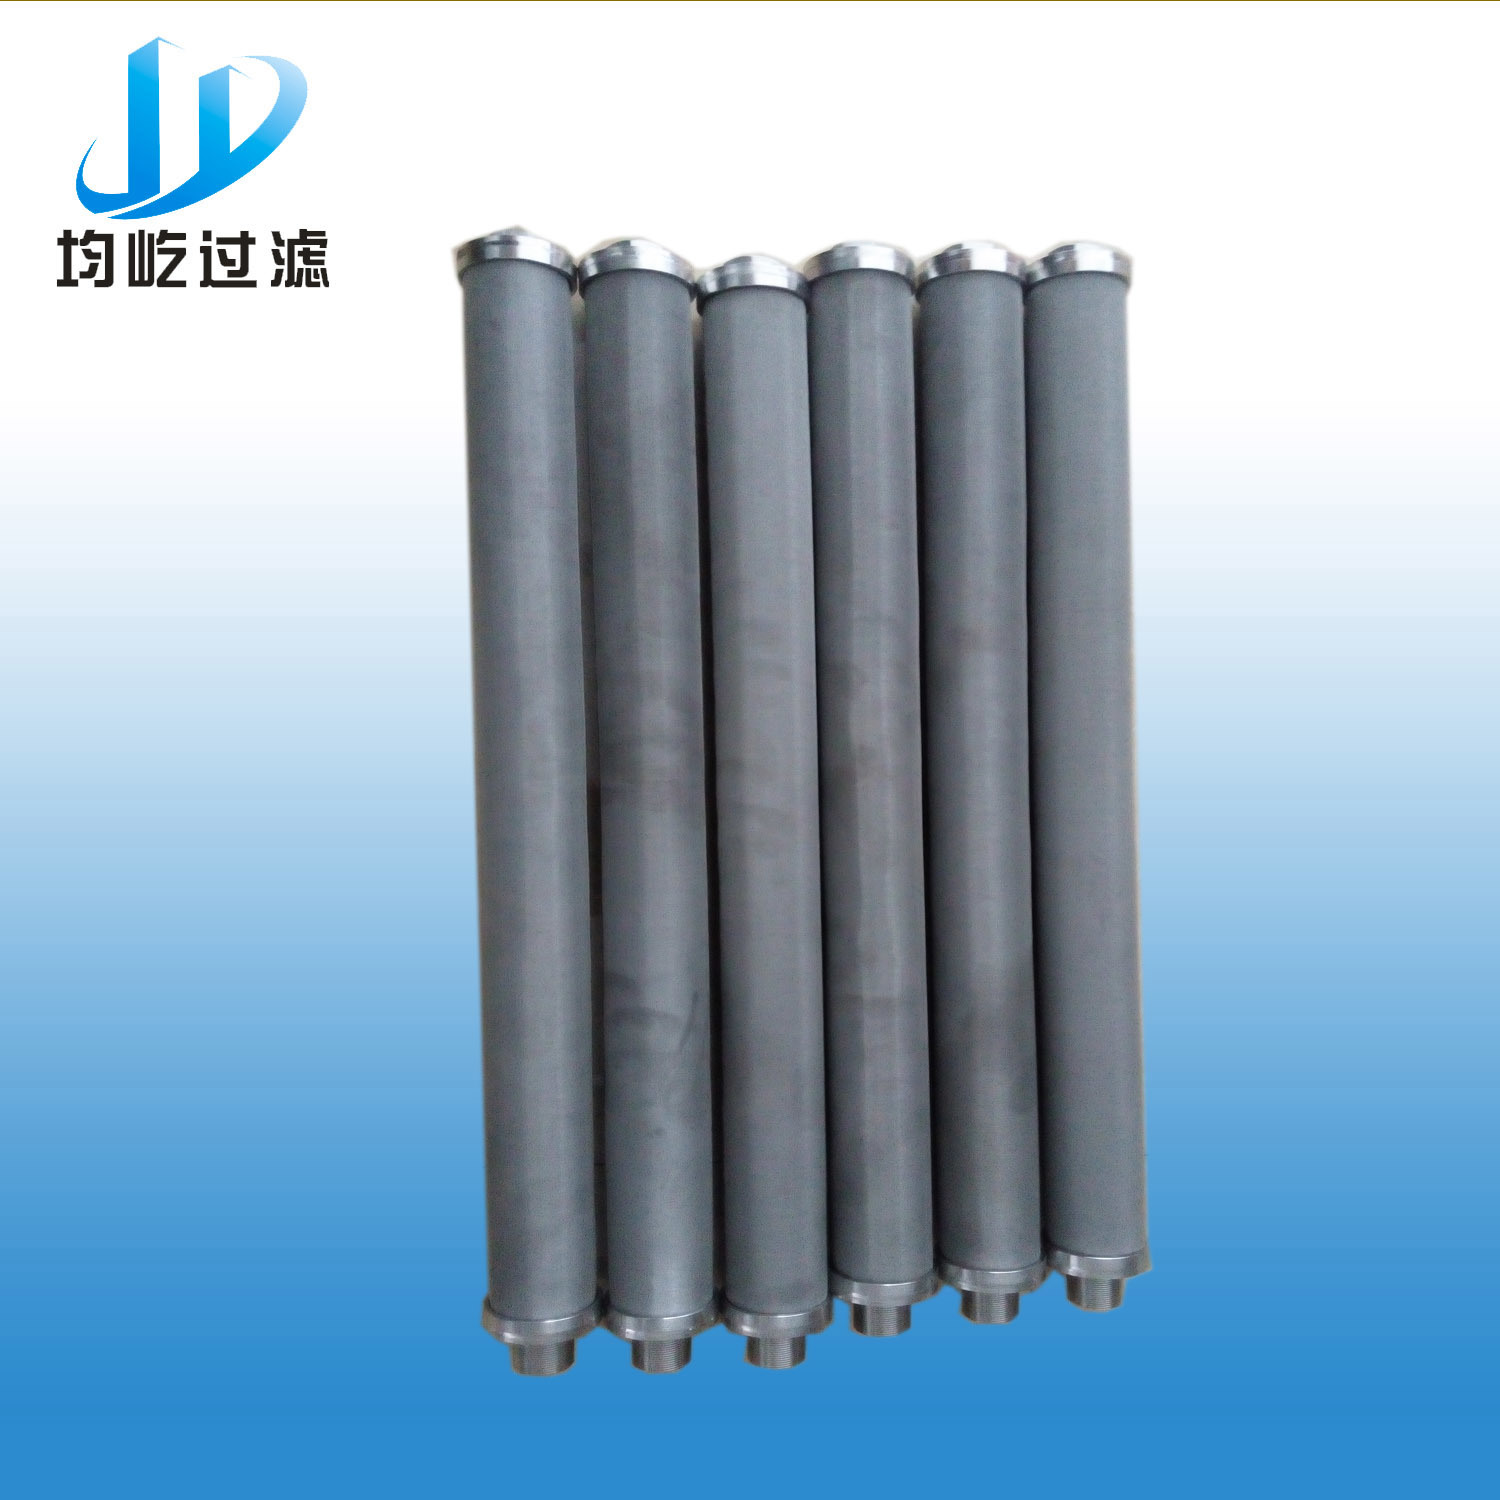 Juice Filter Stainless Steel Candle Filter